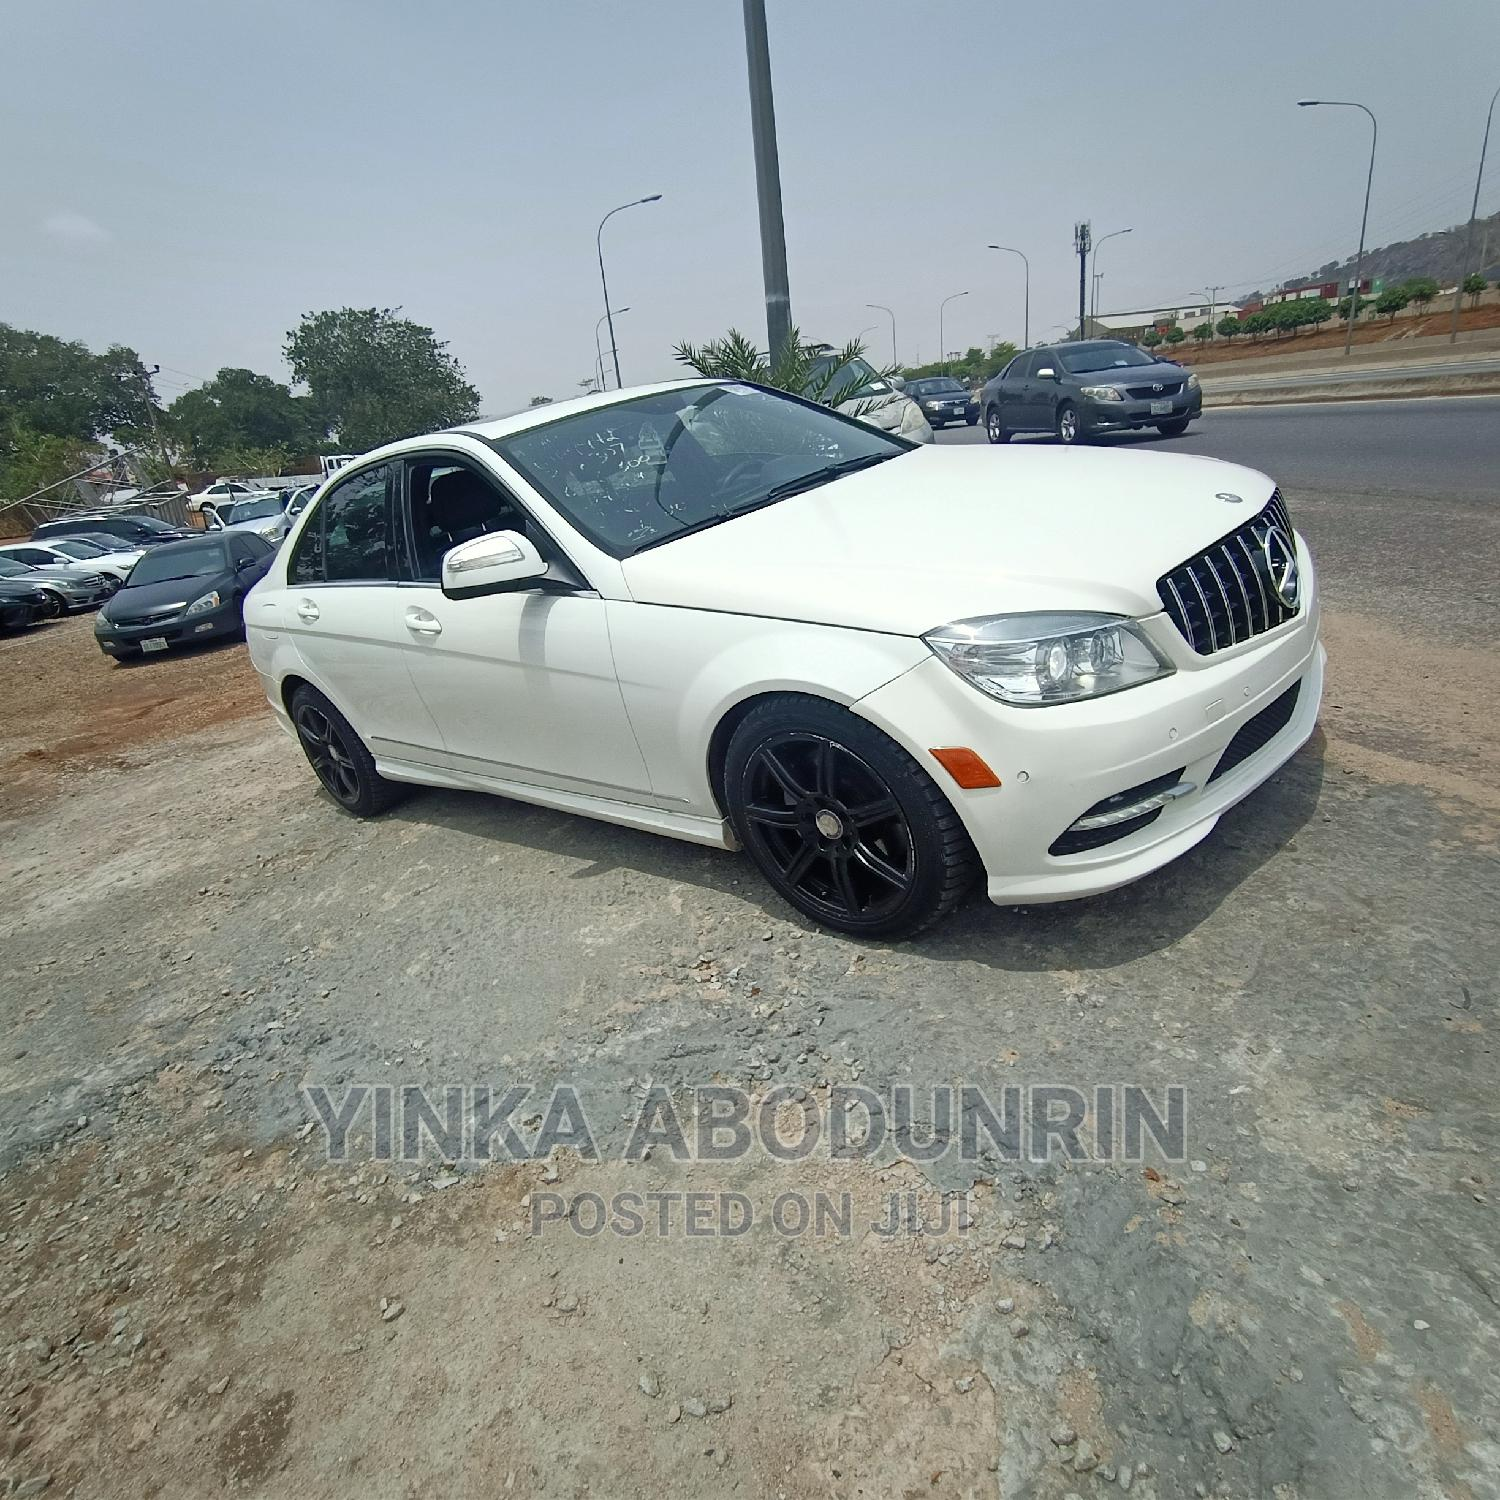 Mercedes-Benz C300 2010 White   Cars for sale in Central Business Dis, Abuja (FCT) State, Nigeria